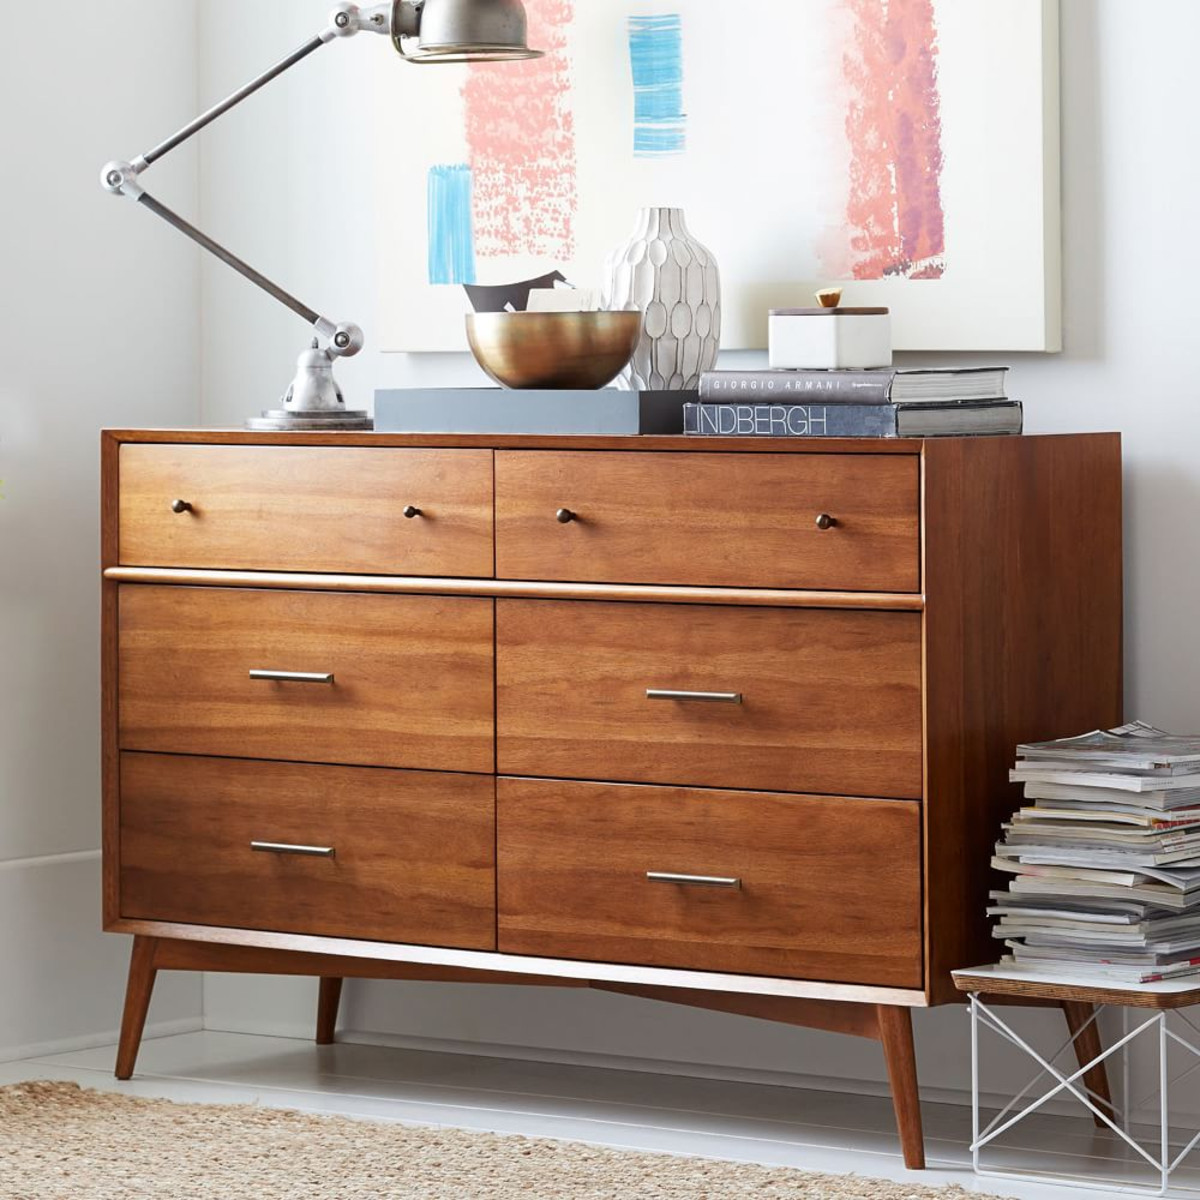 Picture of: Mid Century Modern 6 Drawer Dresser Ikea